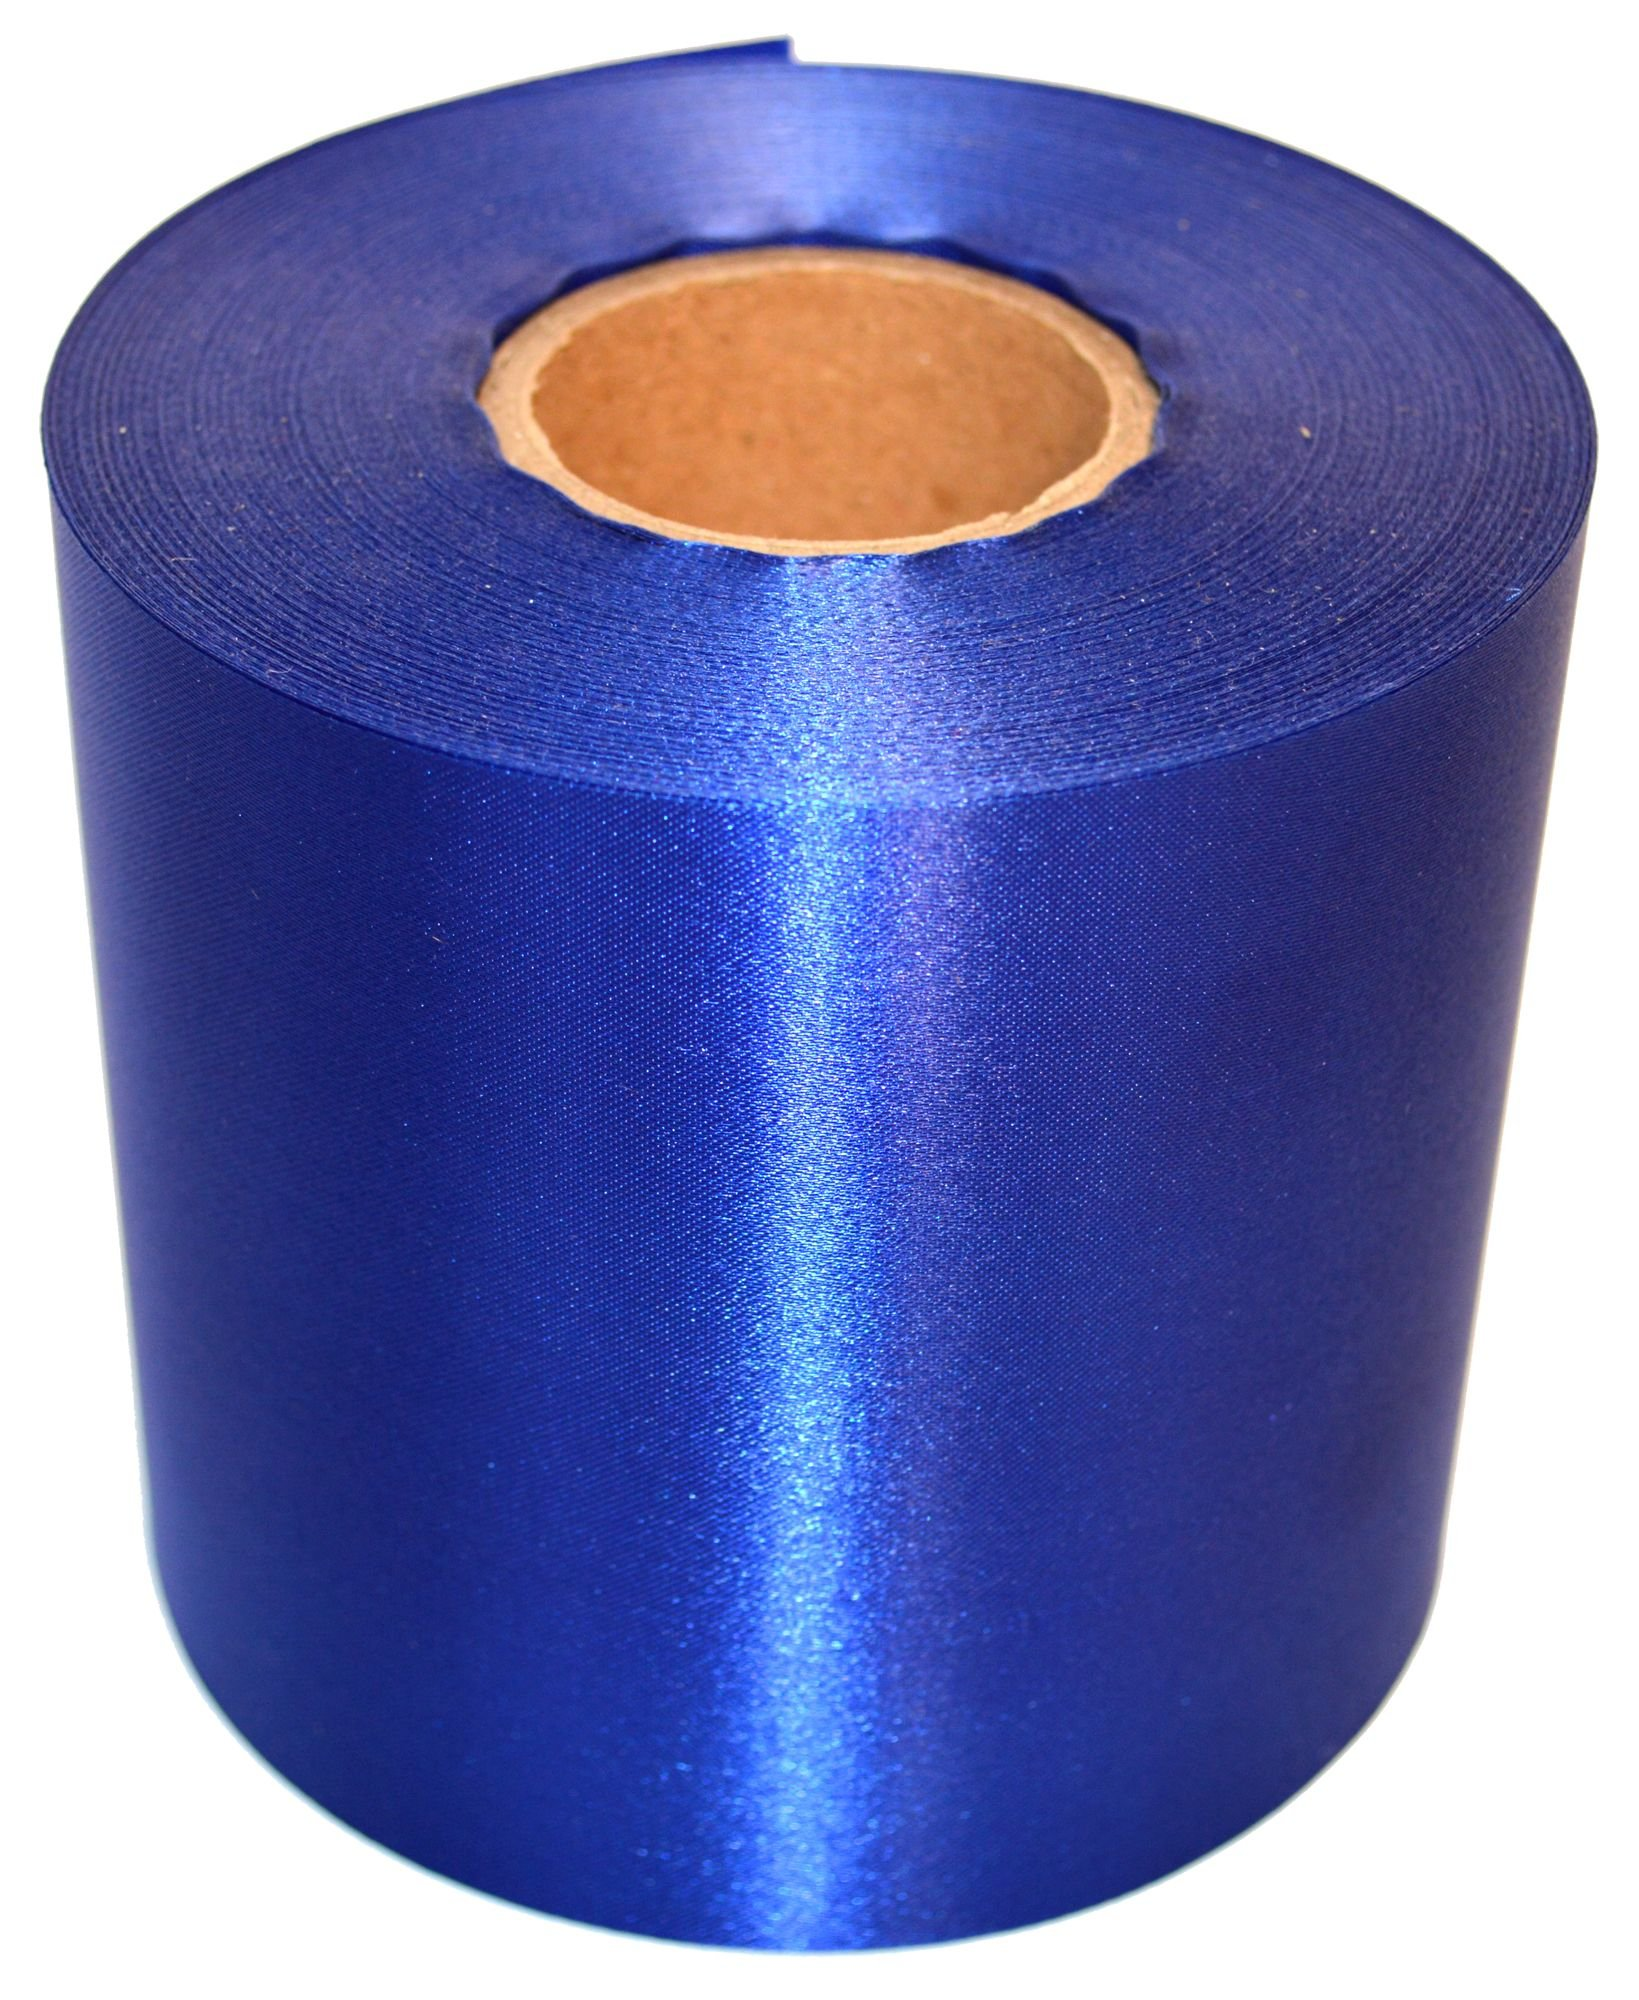 Blue Ceremonial Grand Opening Ribbon 50 Yard Length and 4 inch Wide by Wonder Clothing (Image #2)